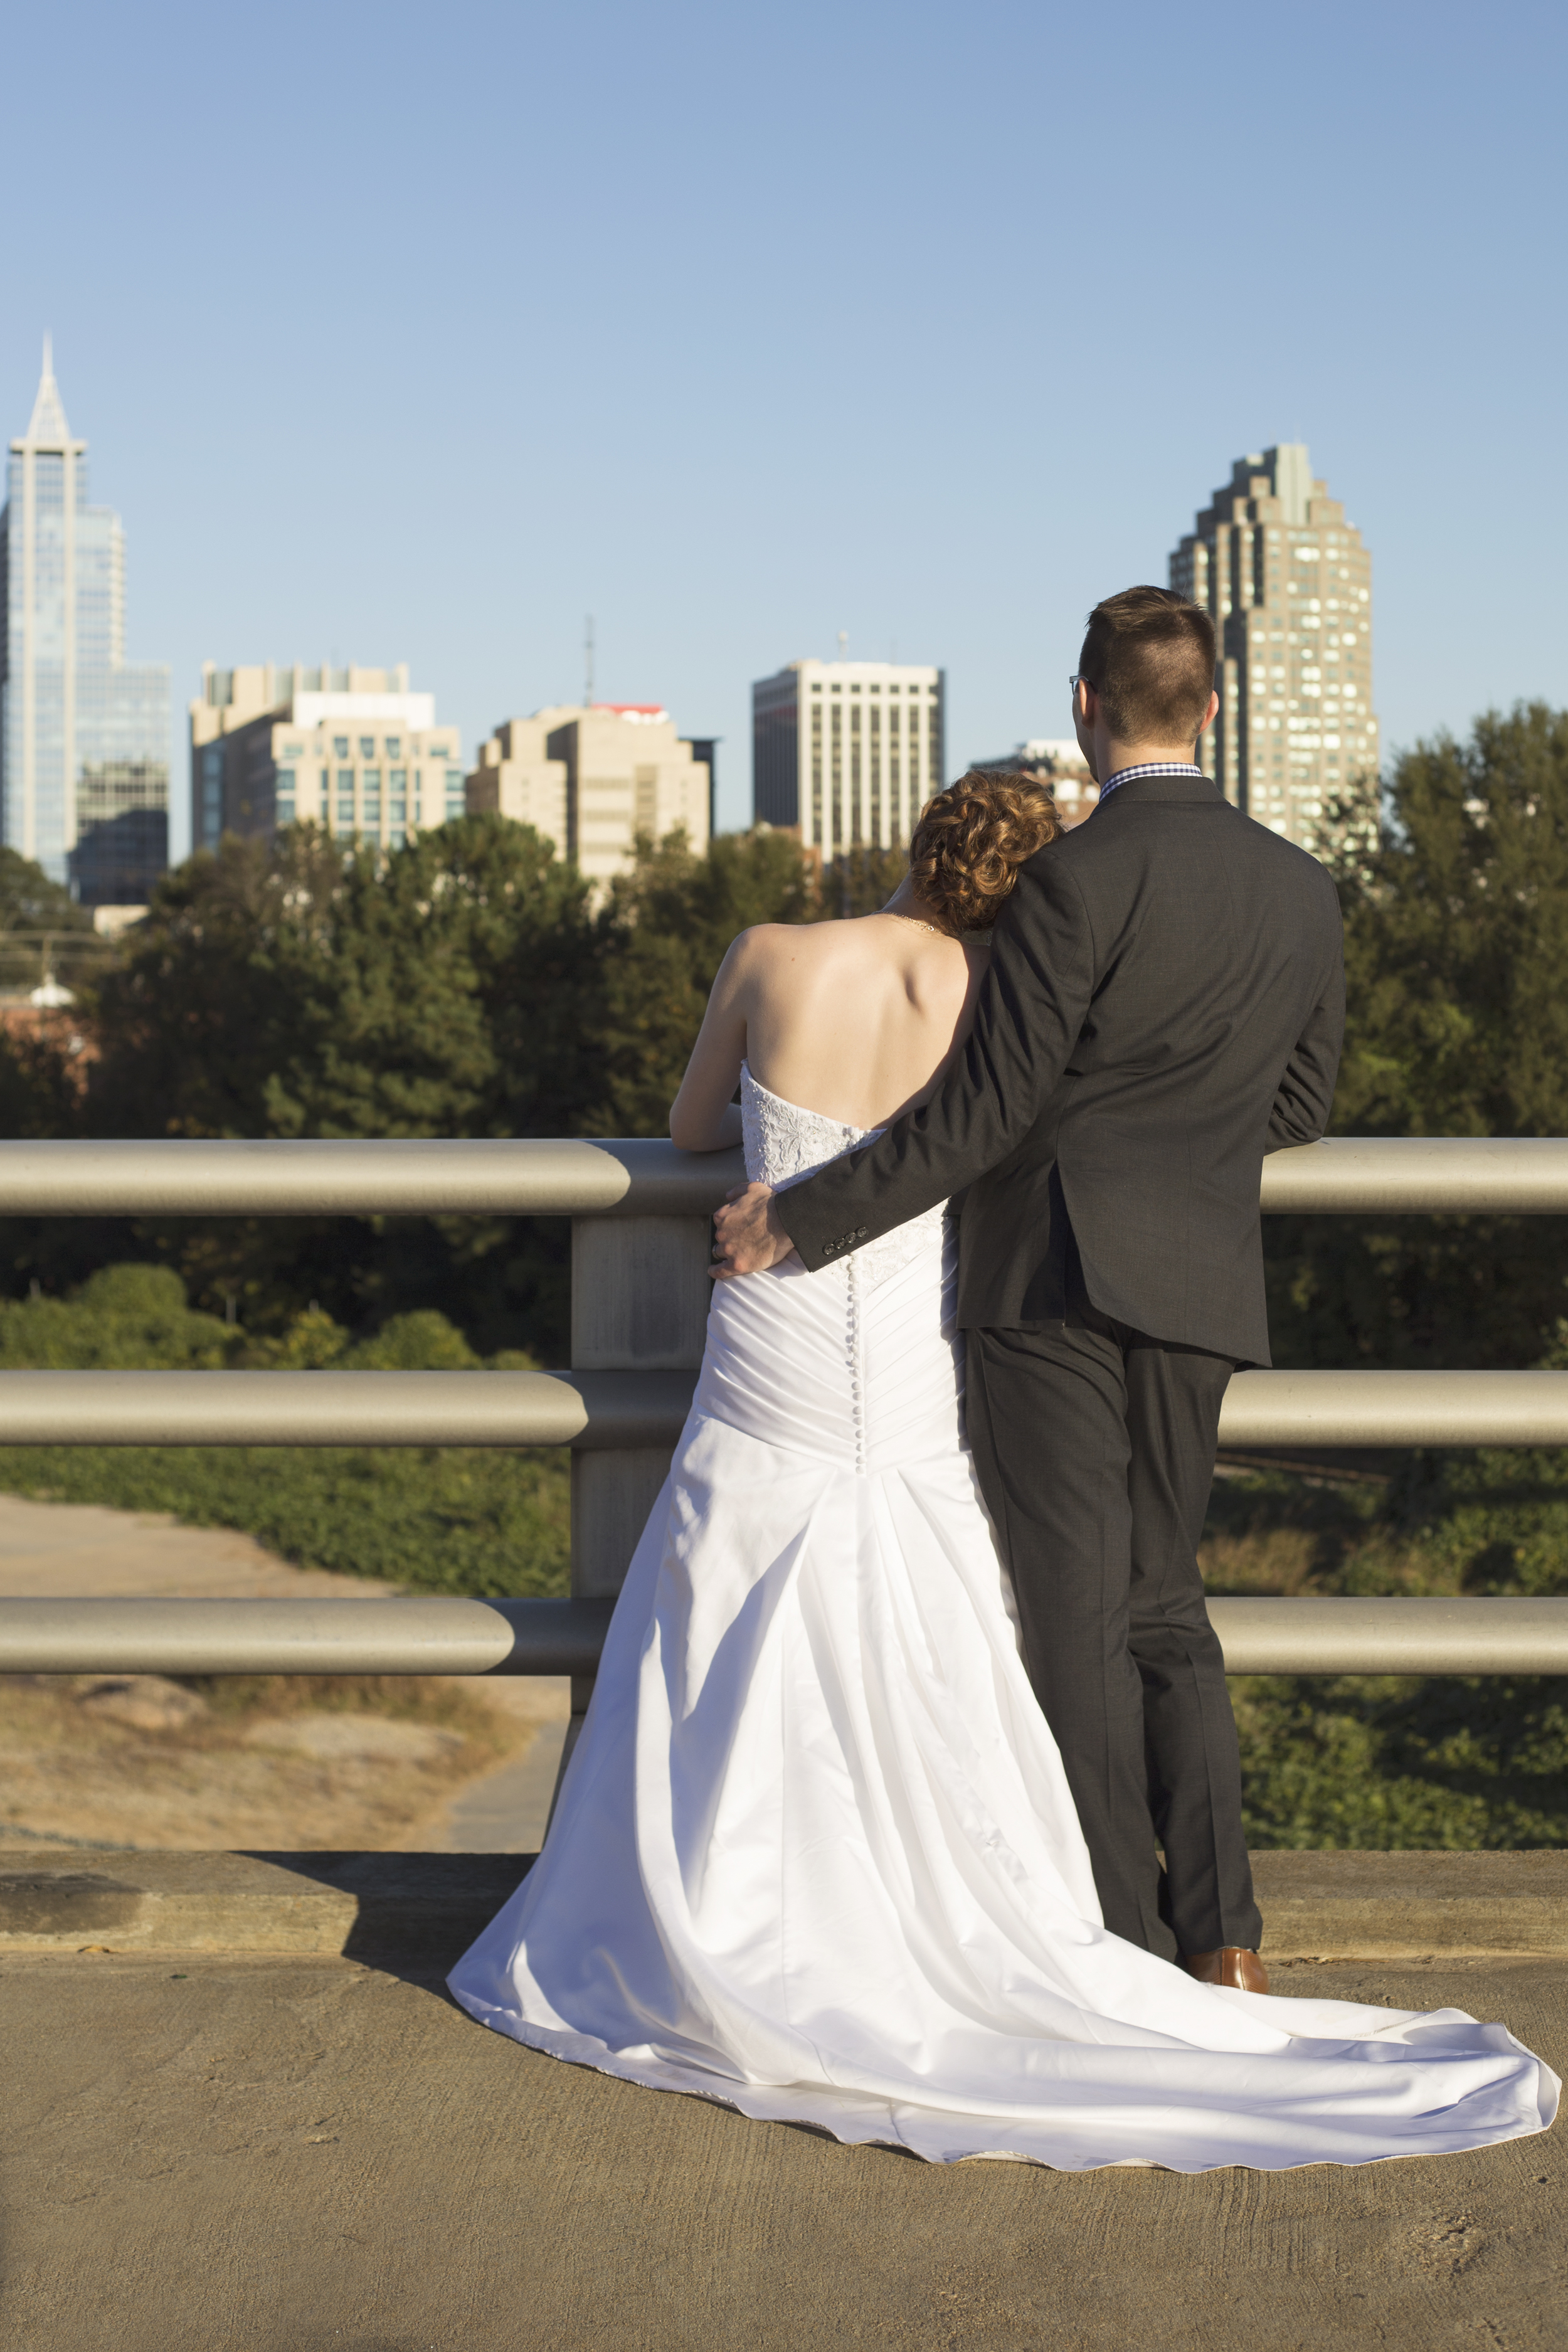 Wedding Photography Session in Raleigh, NC